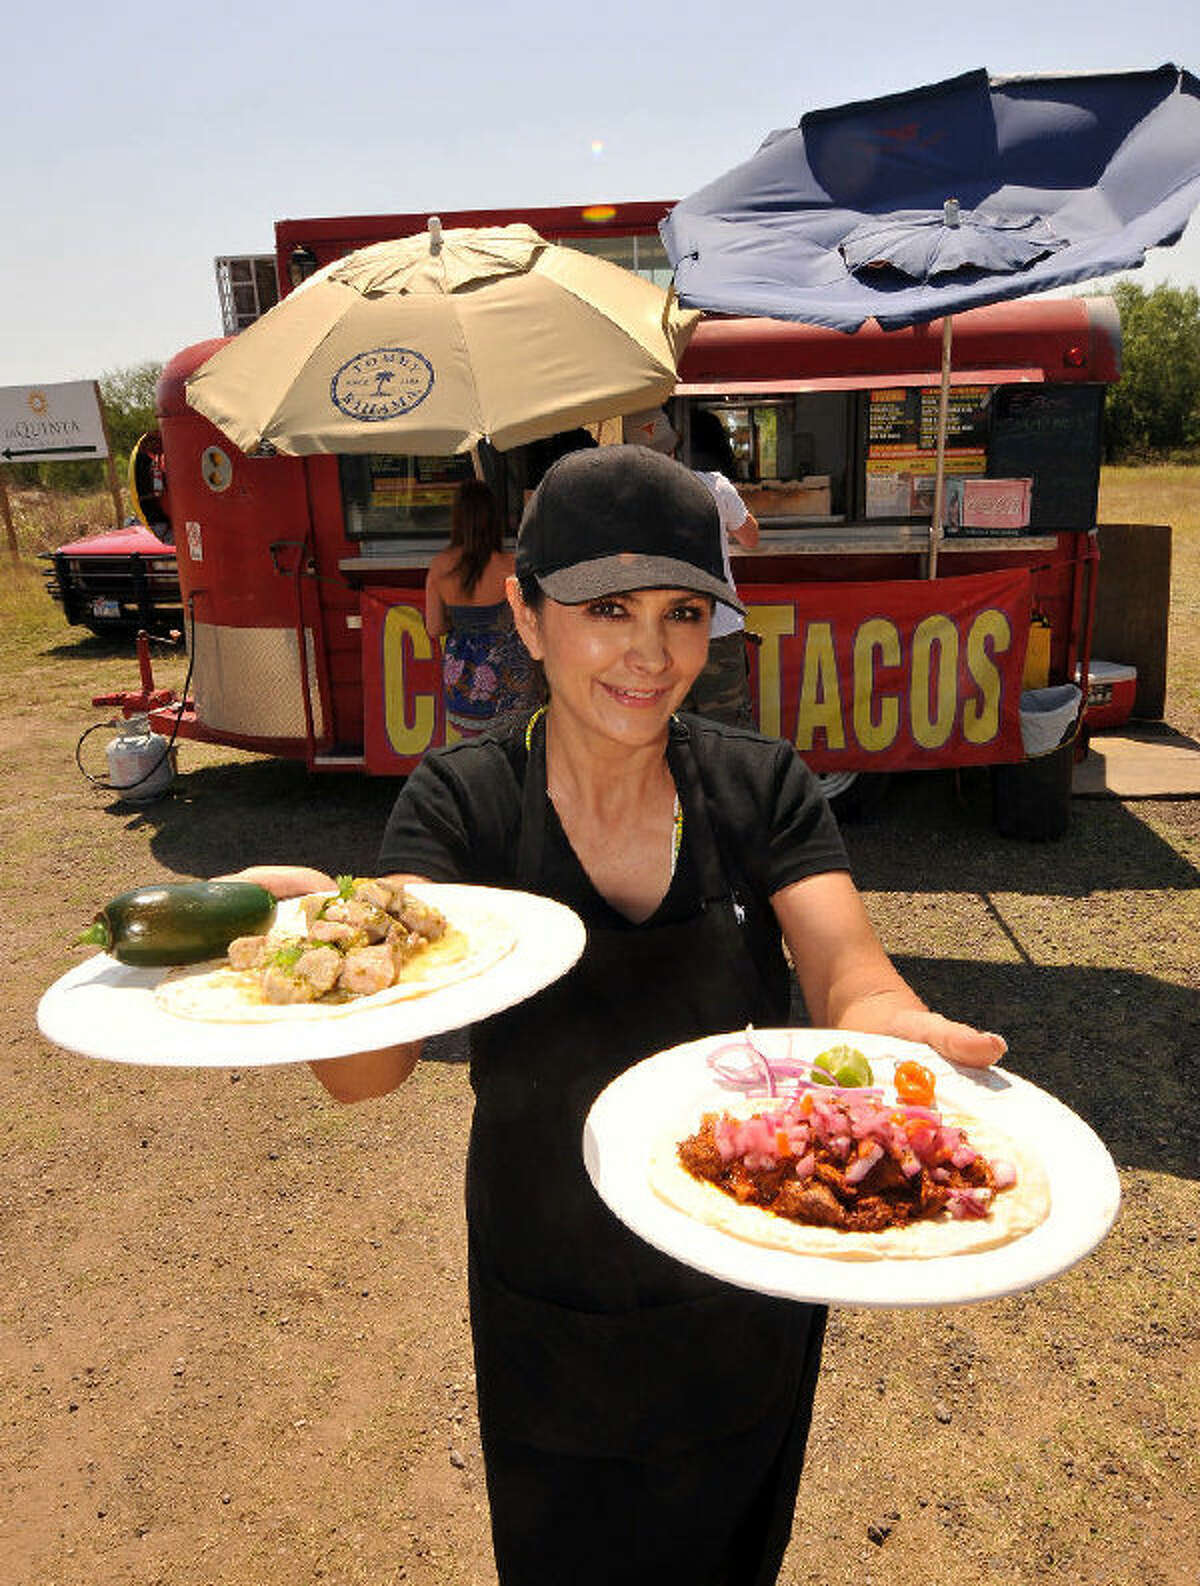 Celia Davis is co-owner and operator of Chela's Tacos.